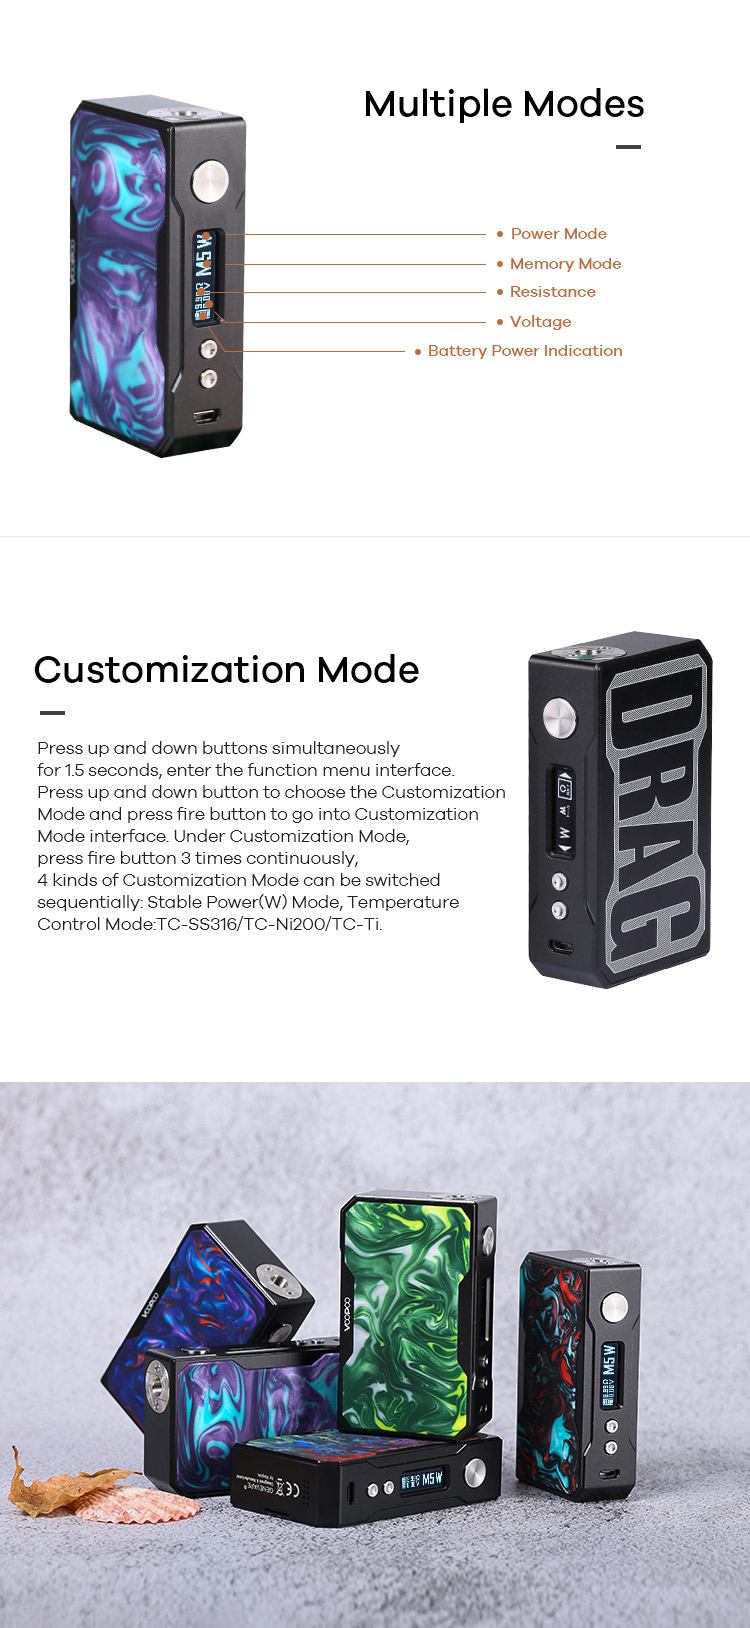 VOOPOO DRAG Mod Support Multiple Modes and customization